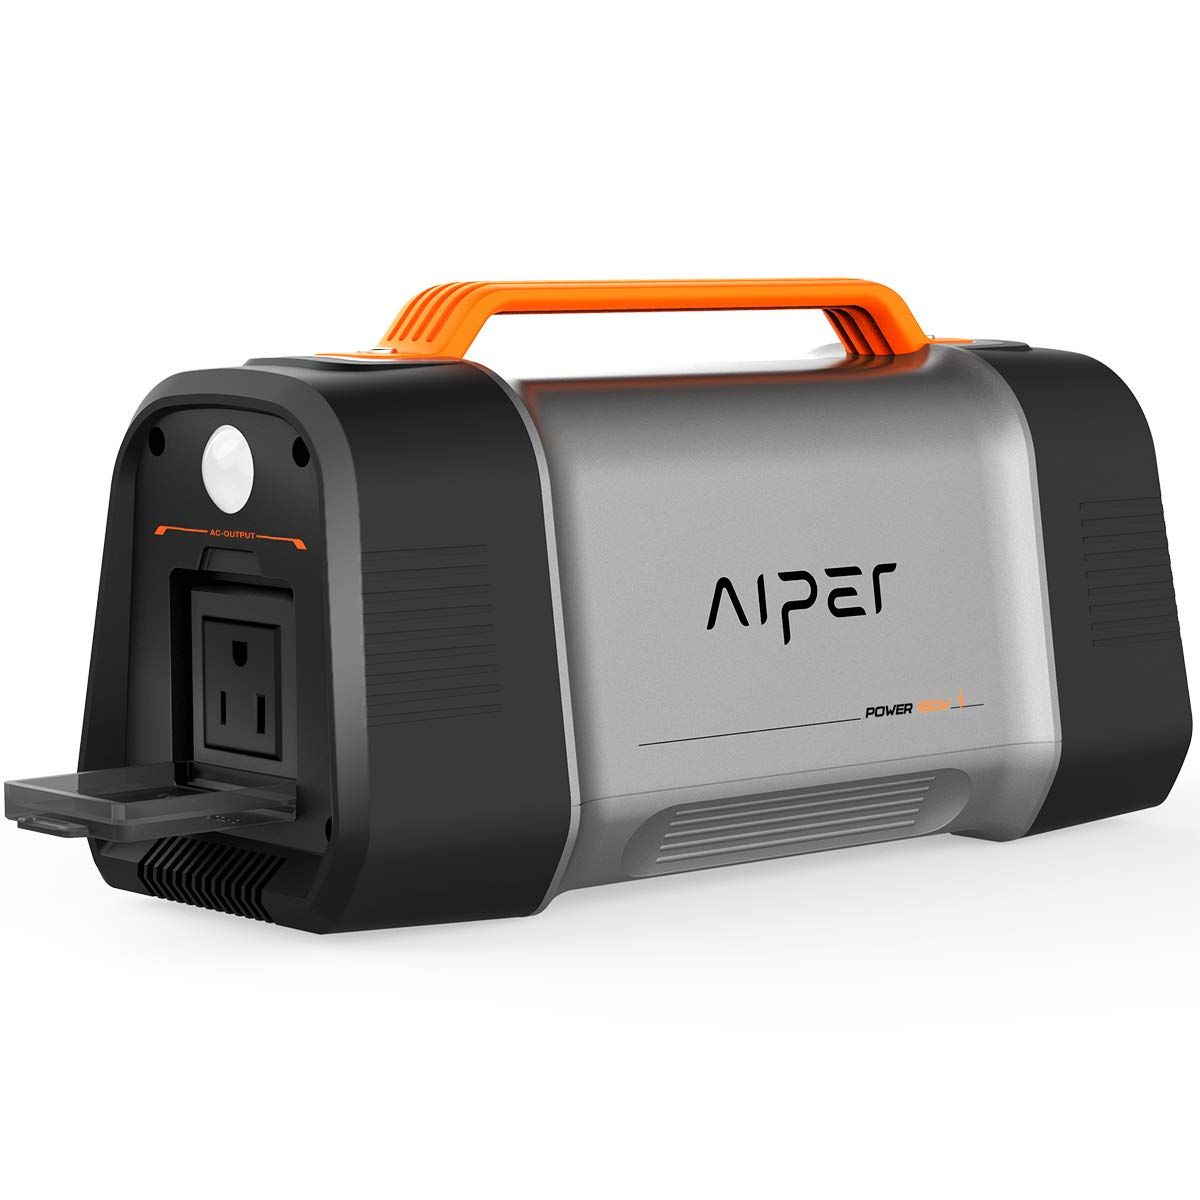 AIPER Portable Power Station Flash 150, 162Wh Solar Generator Lithium Battery Backup Power Supply with 110V/150W(Peak 200W) AC Outlet, QC3.0 USB, Car Port, LED Flashlight for Home Emergency Camping by AIPER